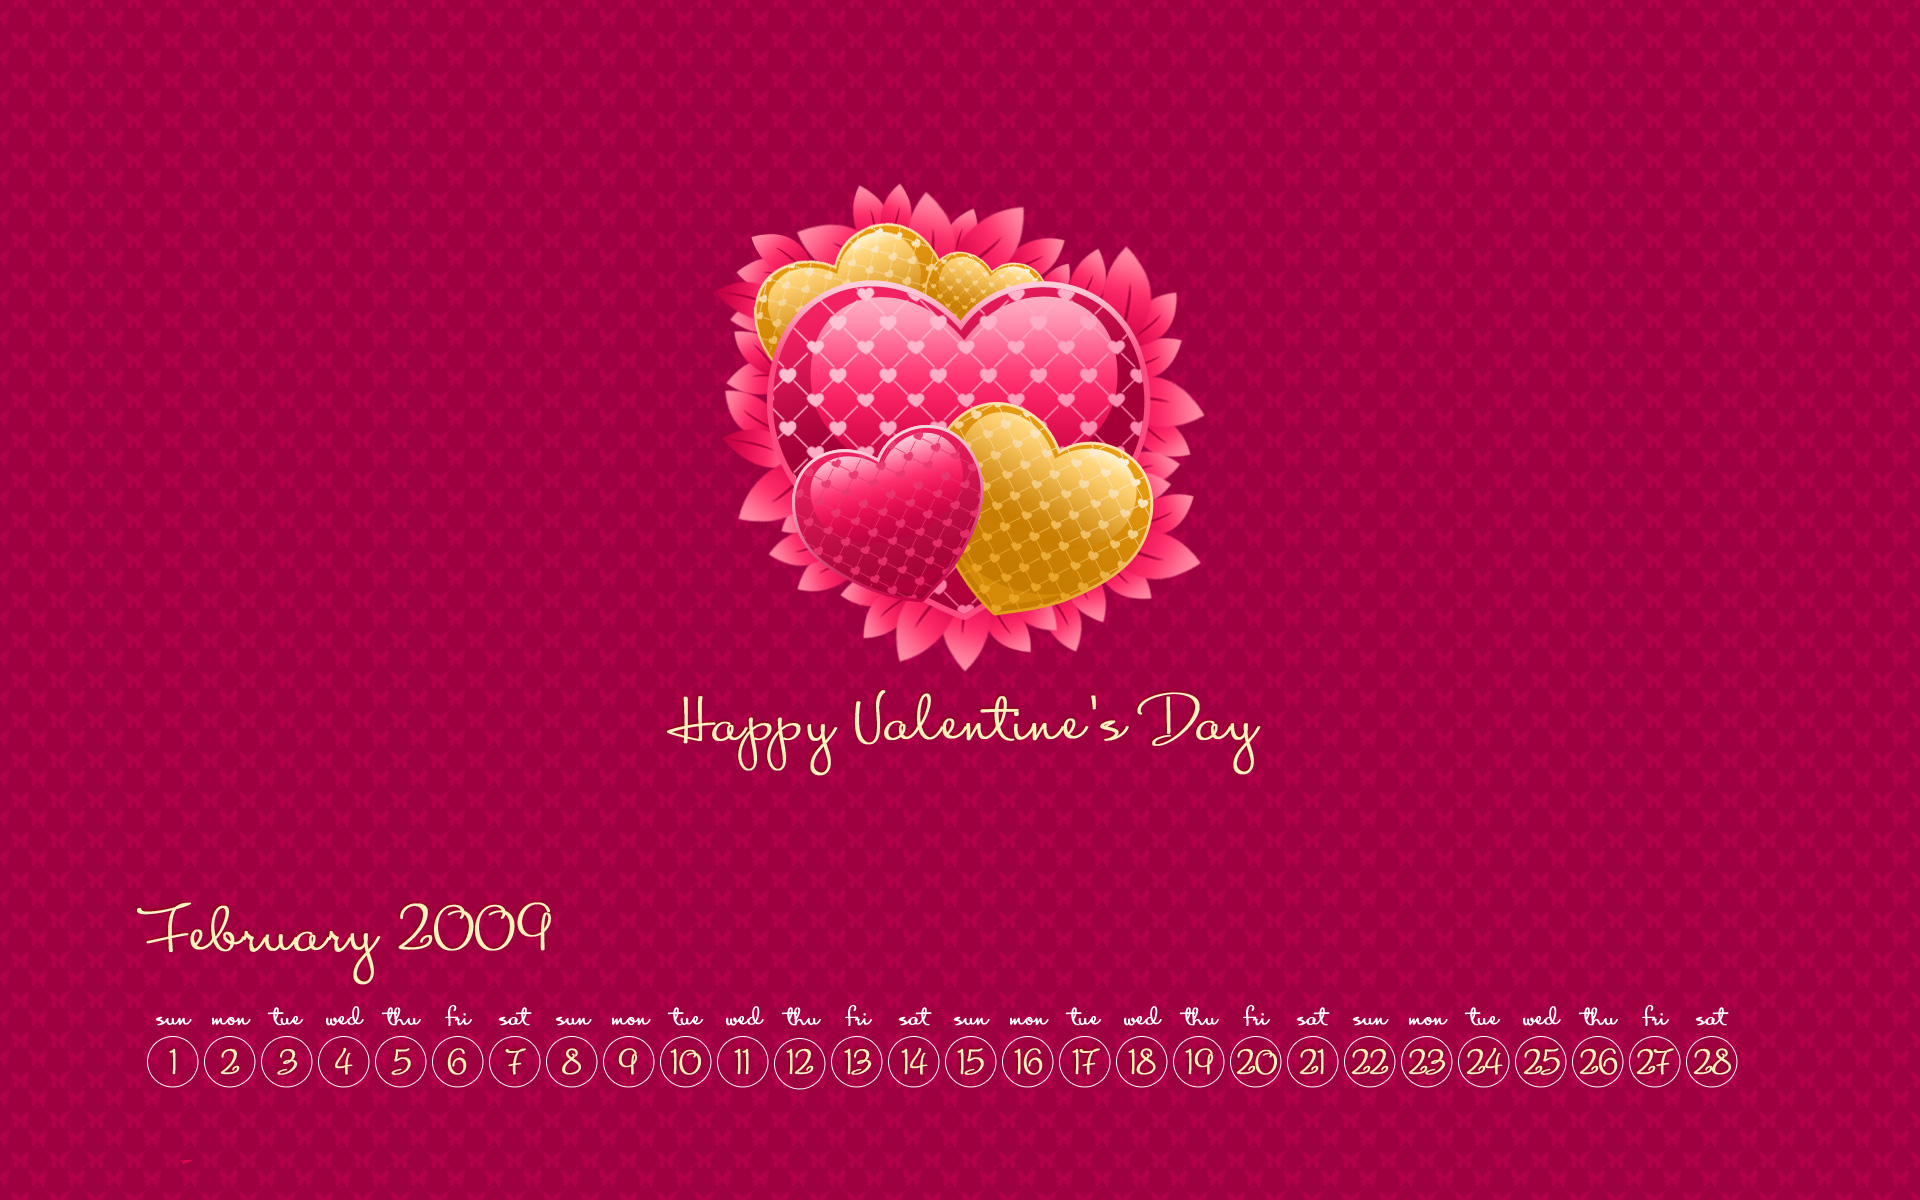 Create February 2009 Calendar Wallpaper in Photoshop CS4